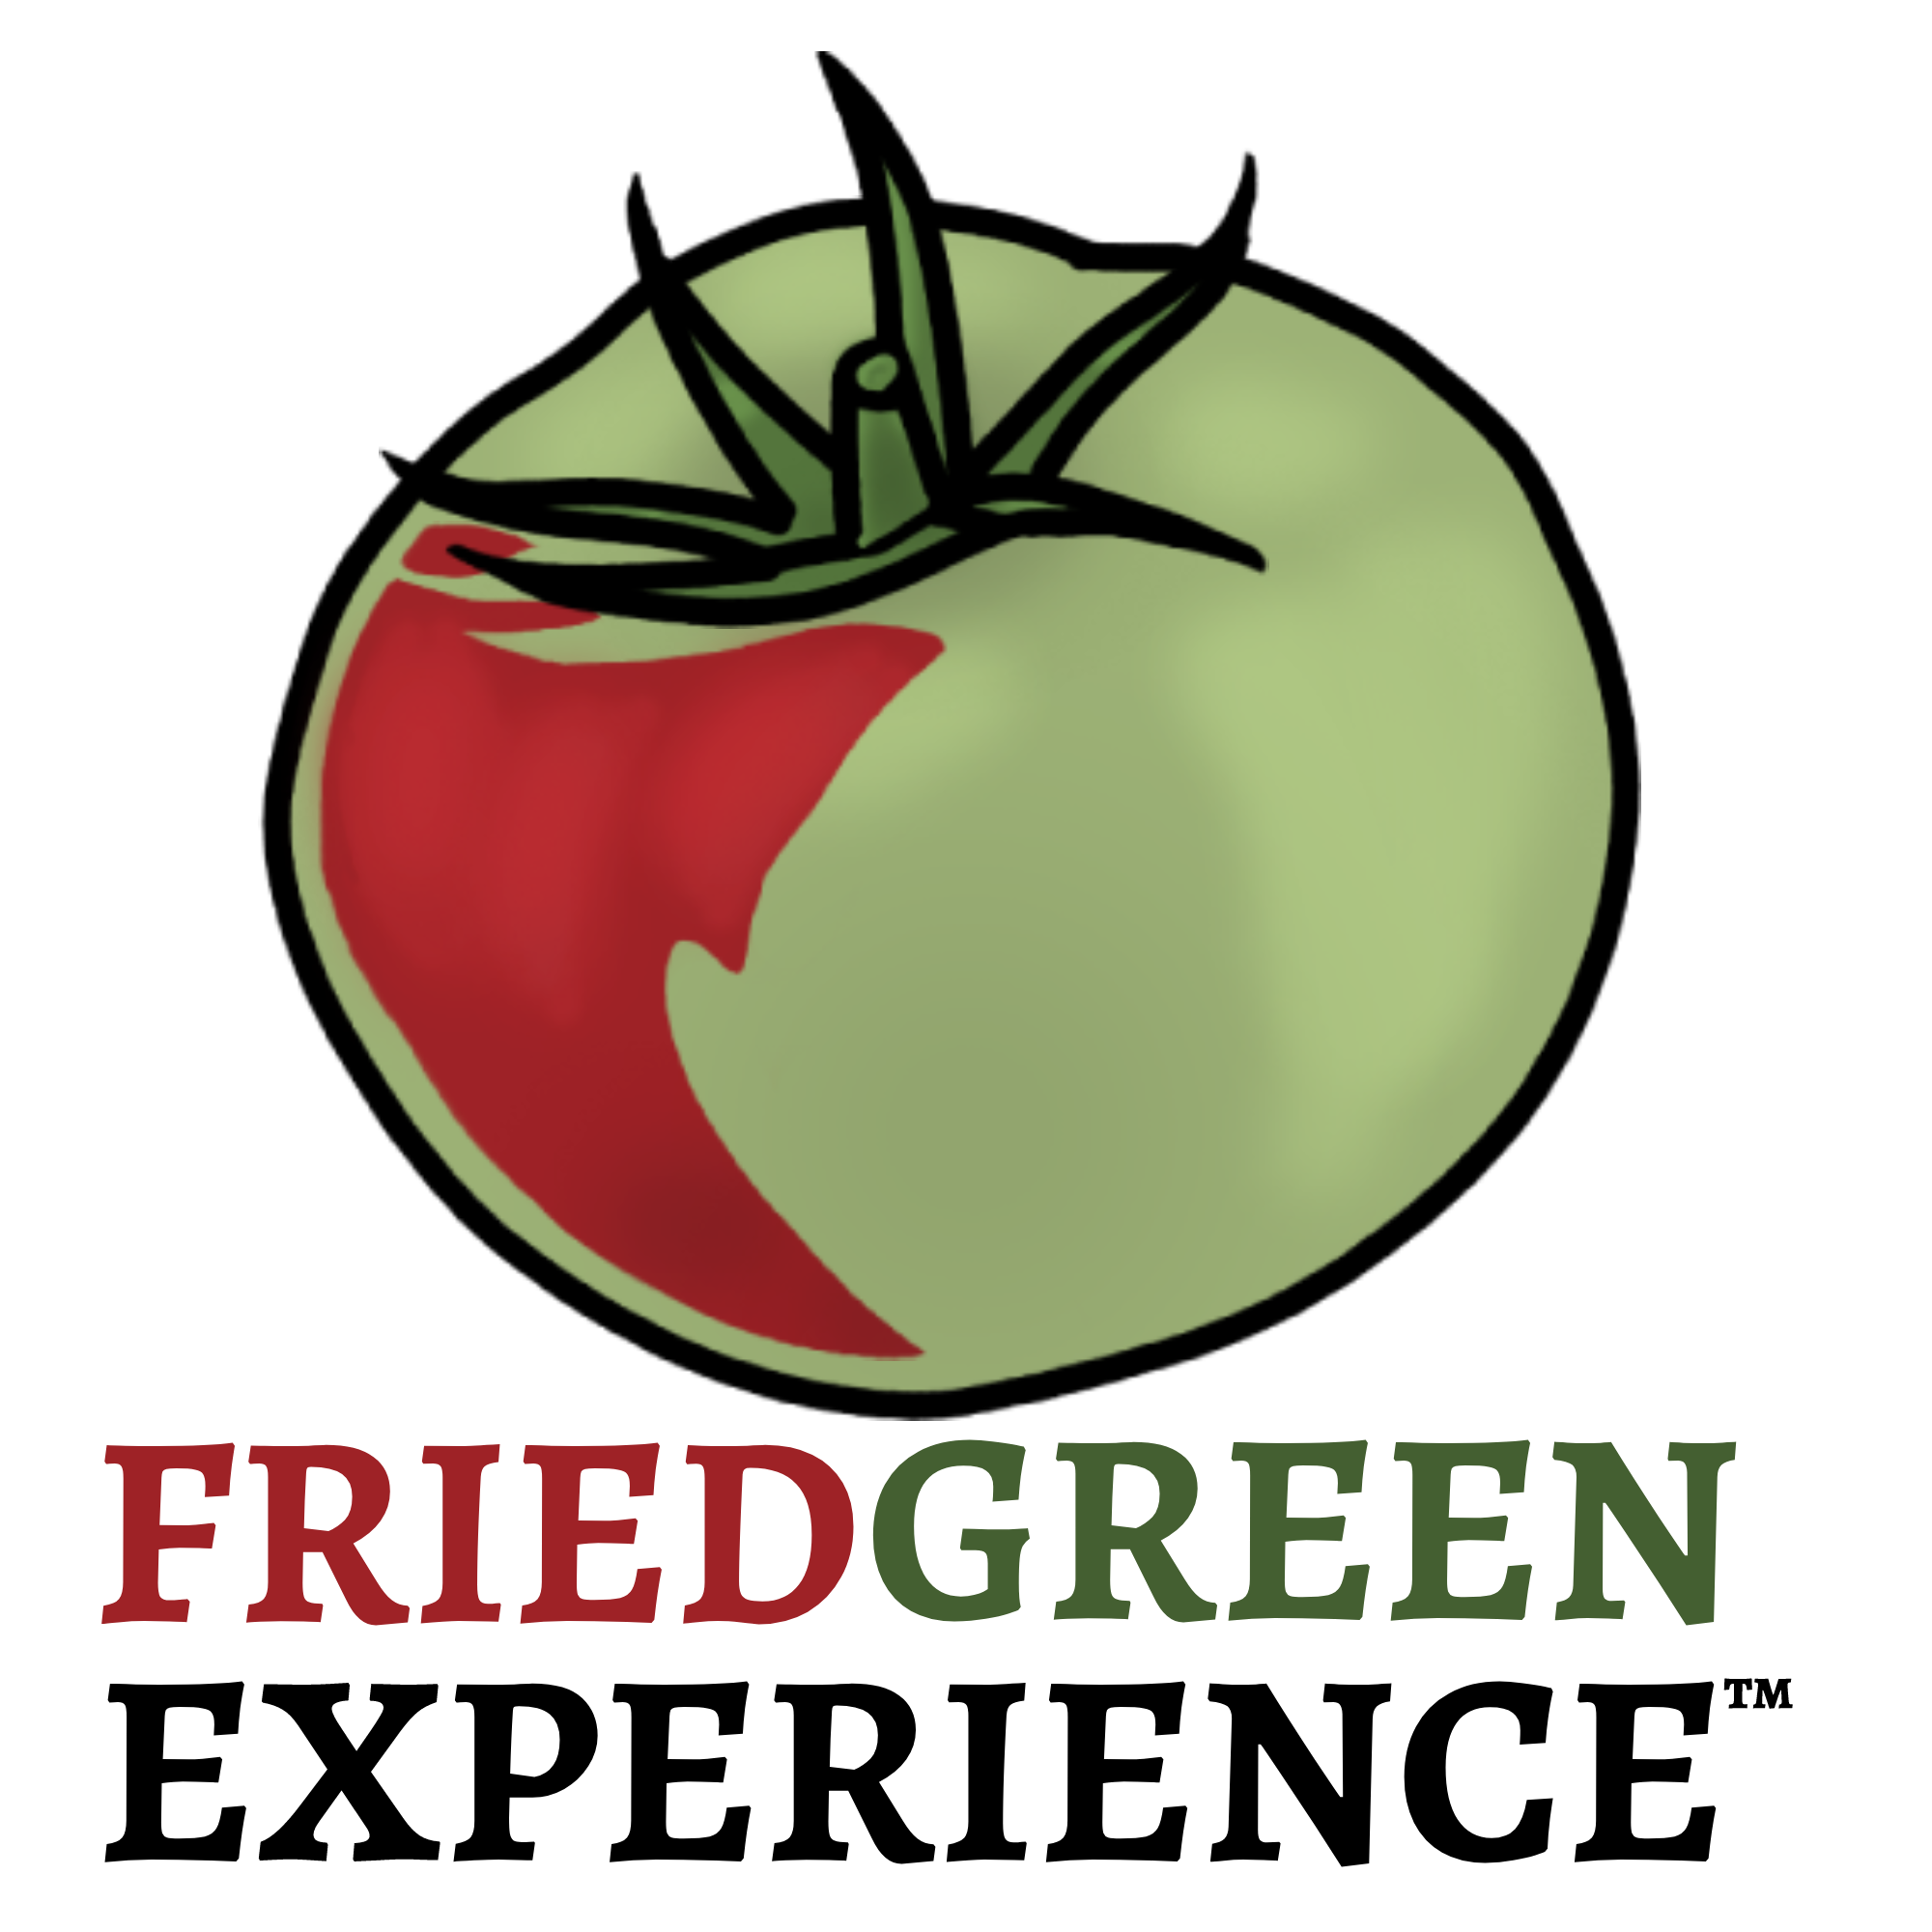 Fried Green Experience